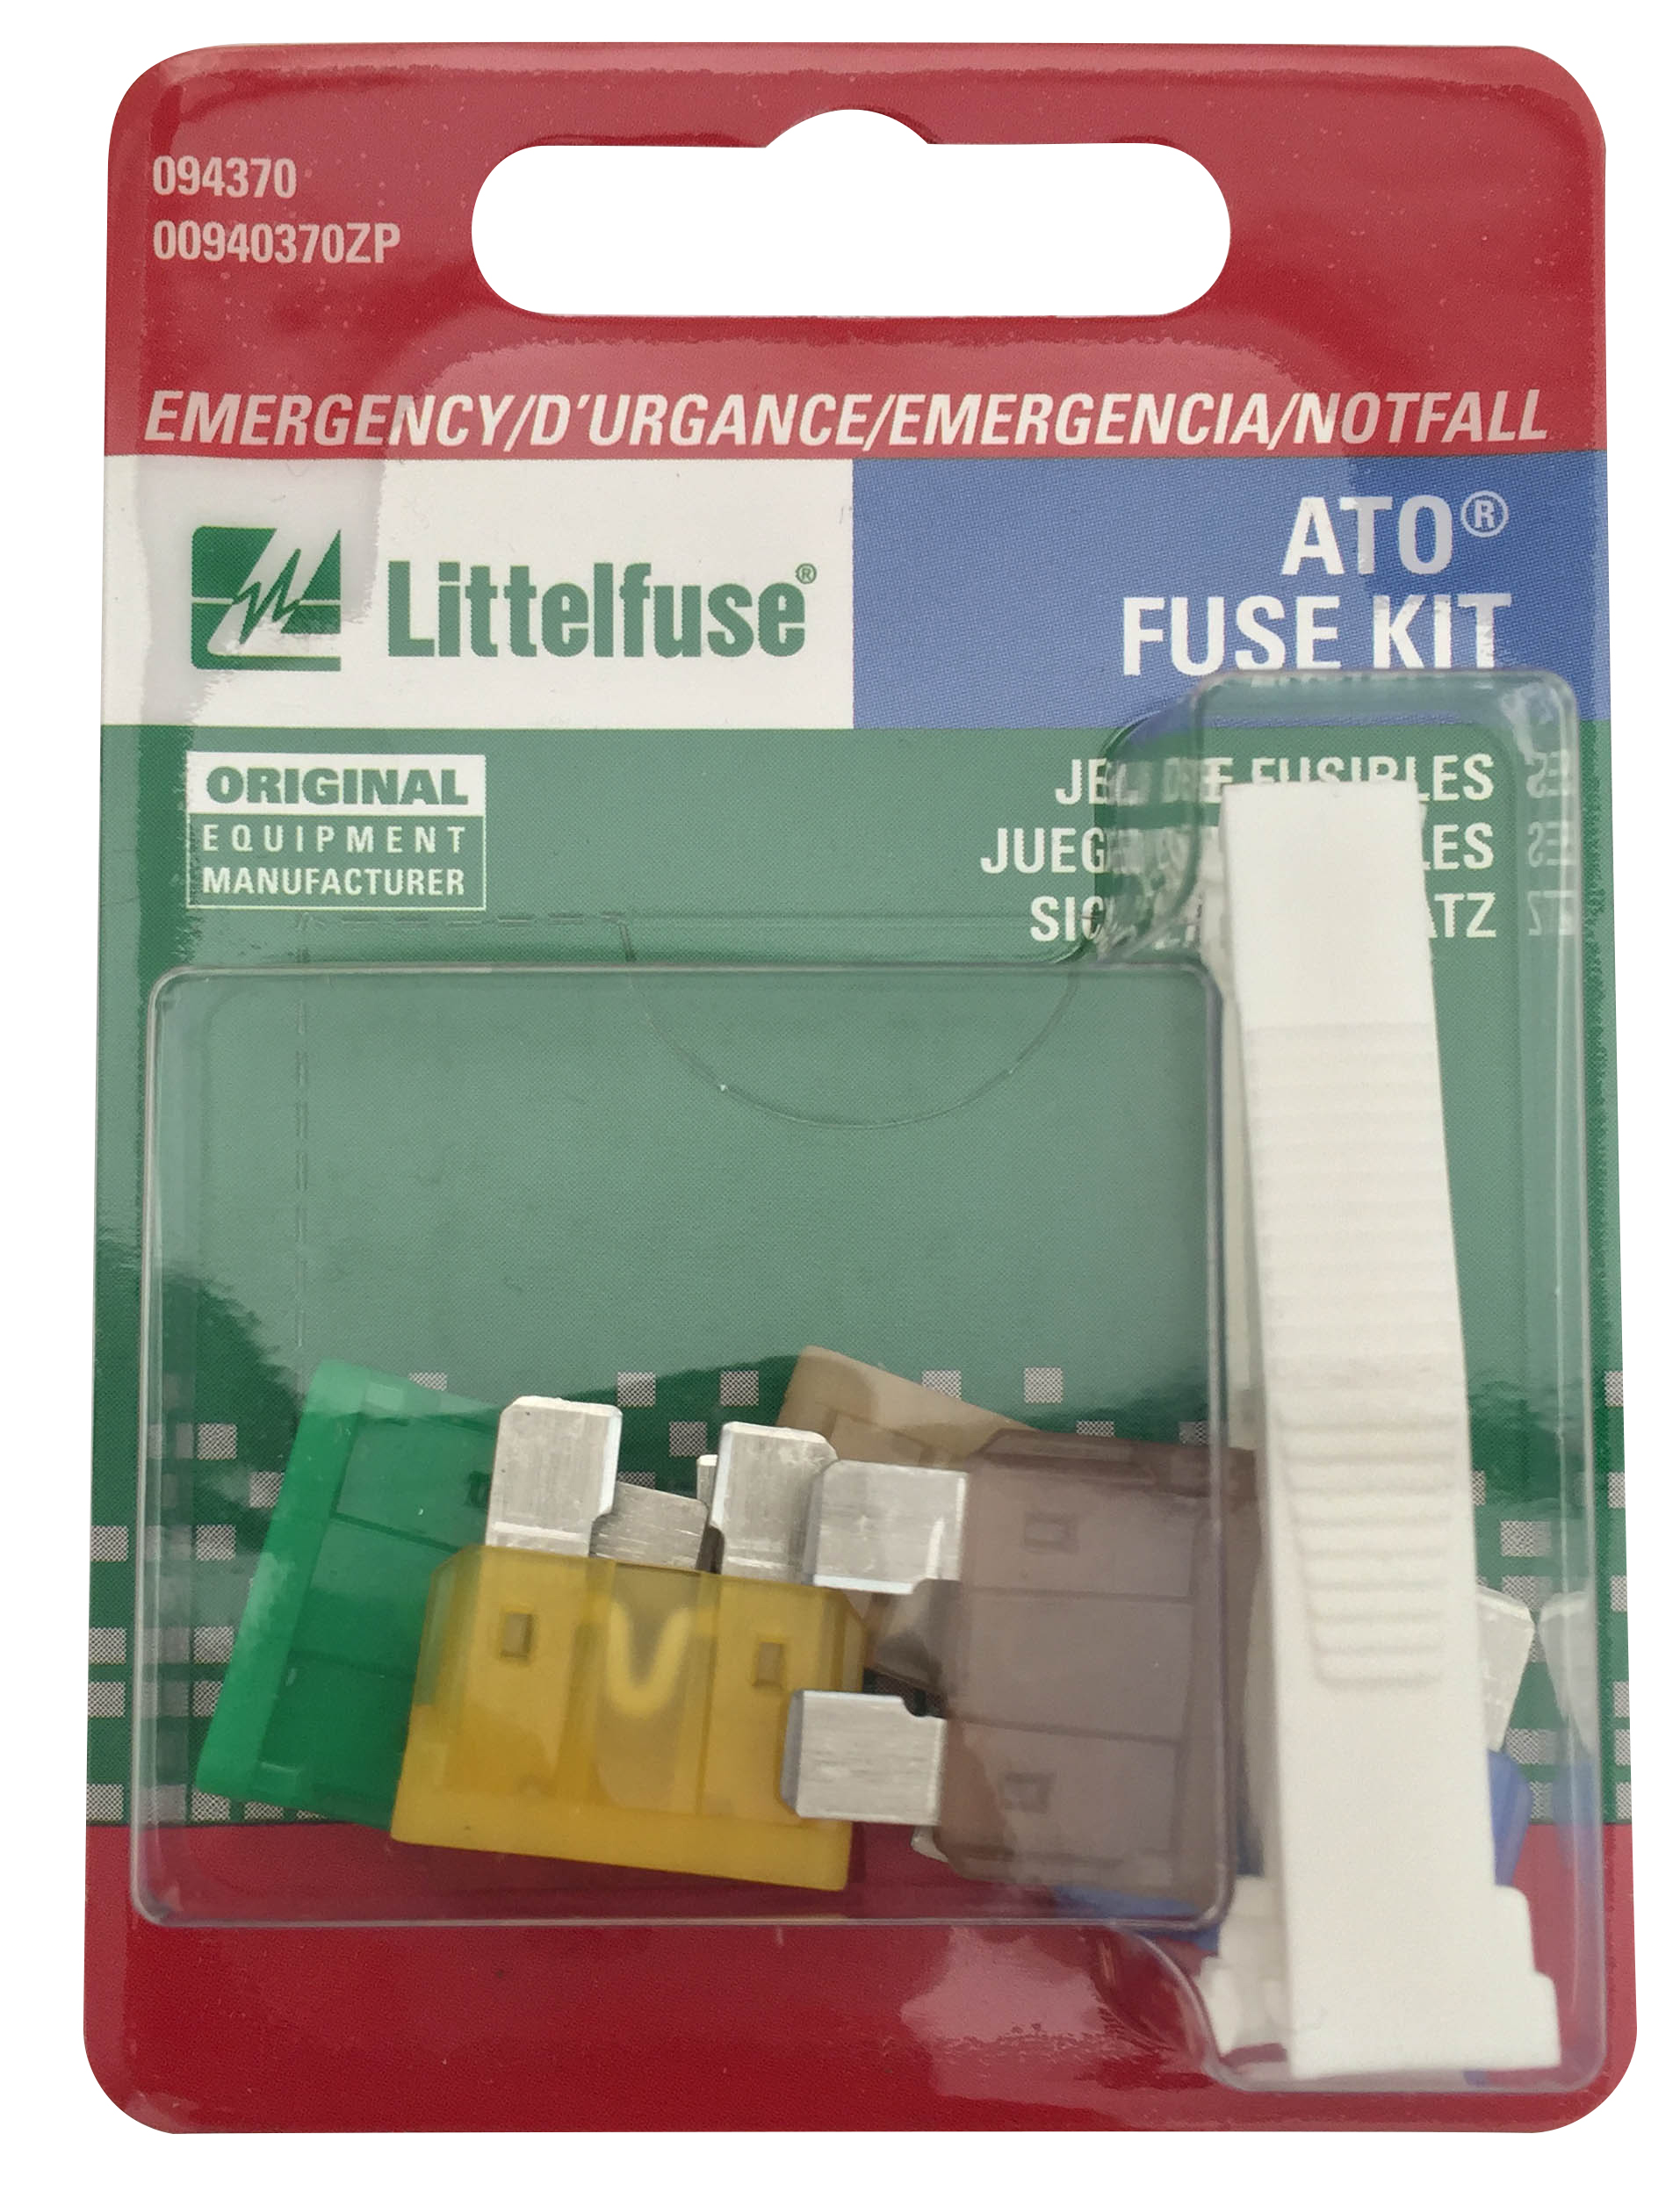 ATO Emergency Fuse Kit